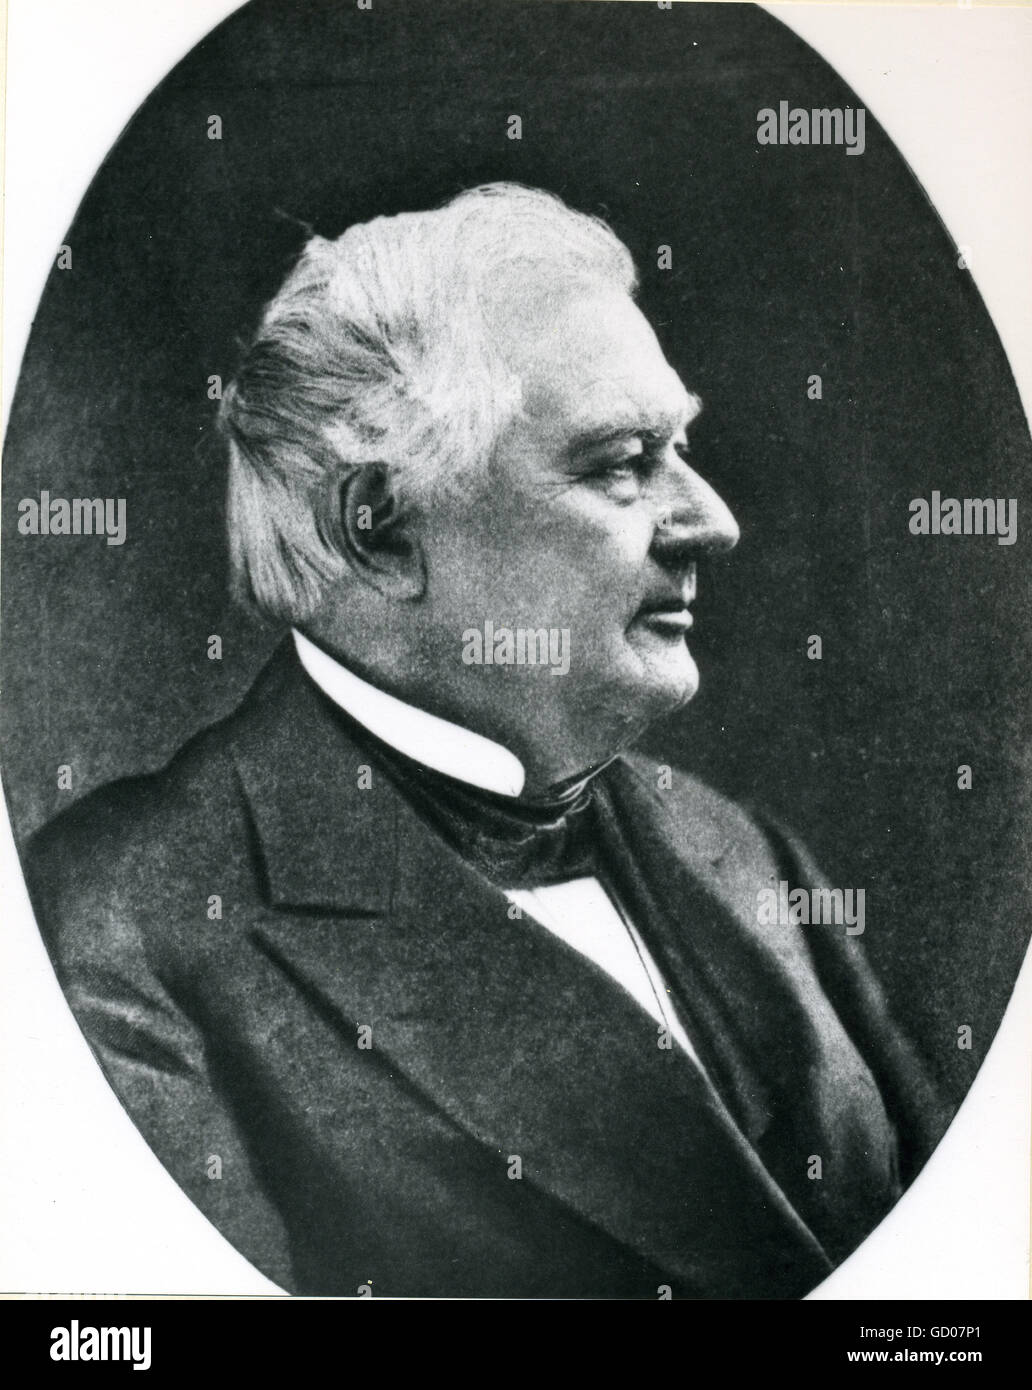 Millard Fillmore (1800-1874), 13th President of the United States. Stock Photo